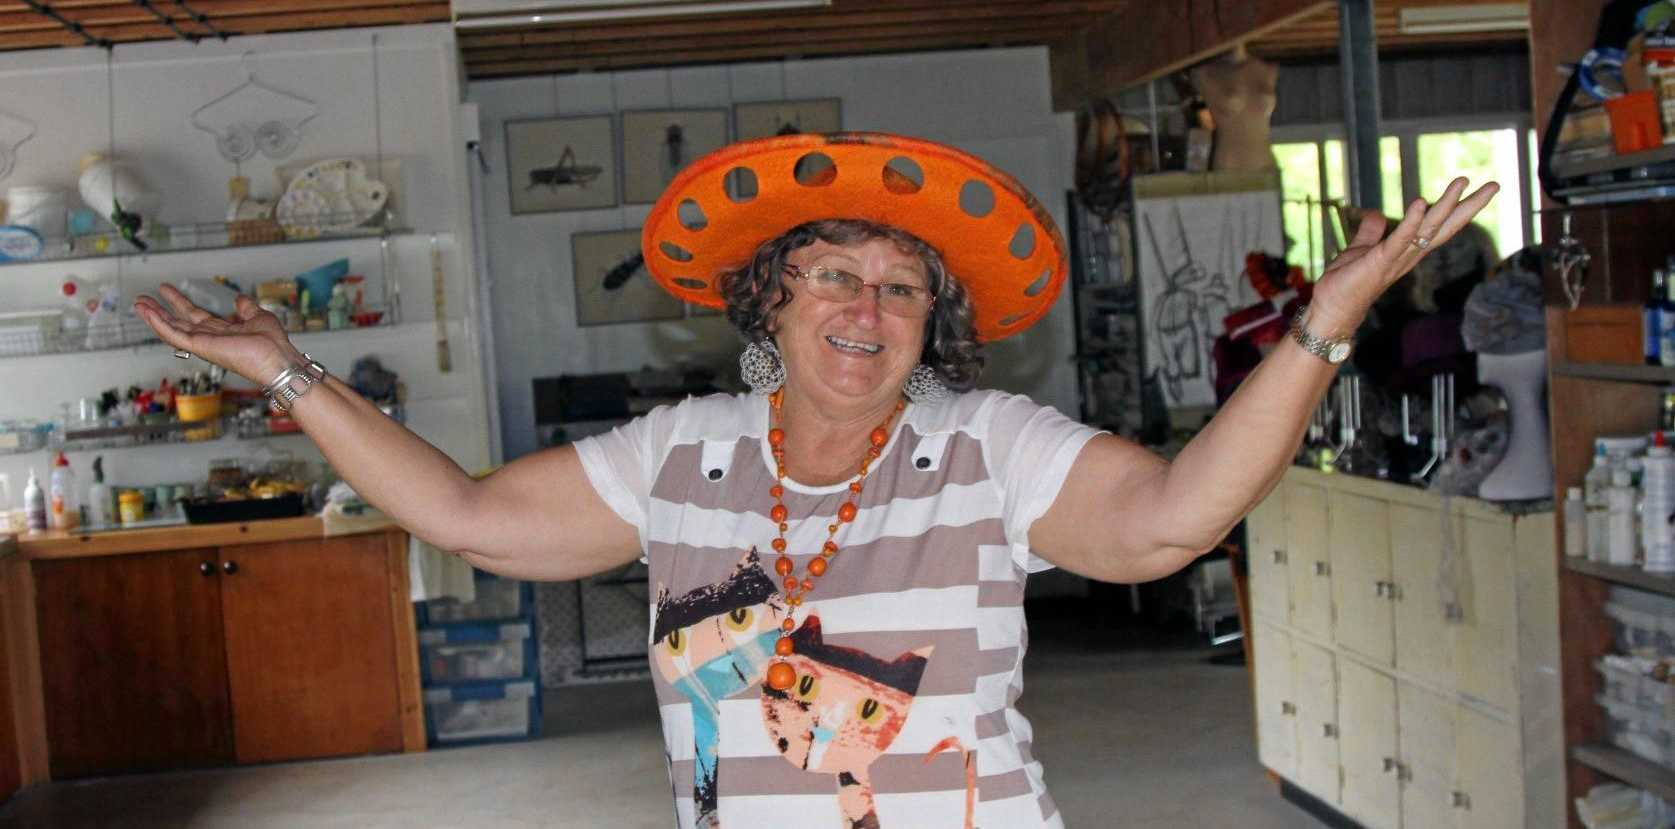 NOW AND THEN: Artist Rhonda Rettke models a felt hat inspired by an old tractor seat at the Gold Mining and Historical Museum as part of the exhibition Now and Then that explores contemporary historical stories.